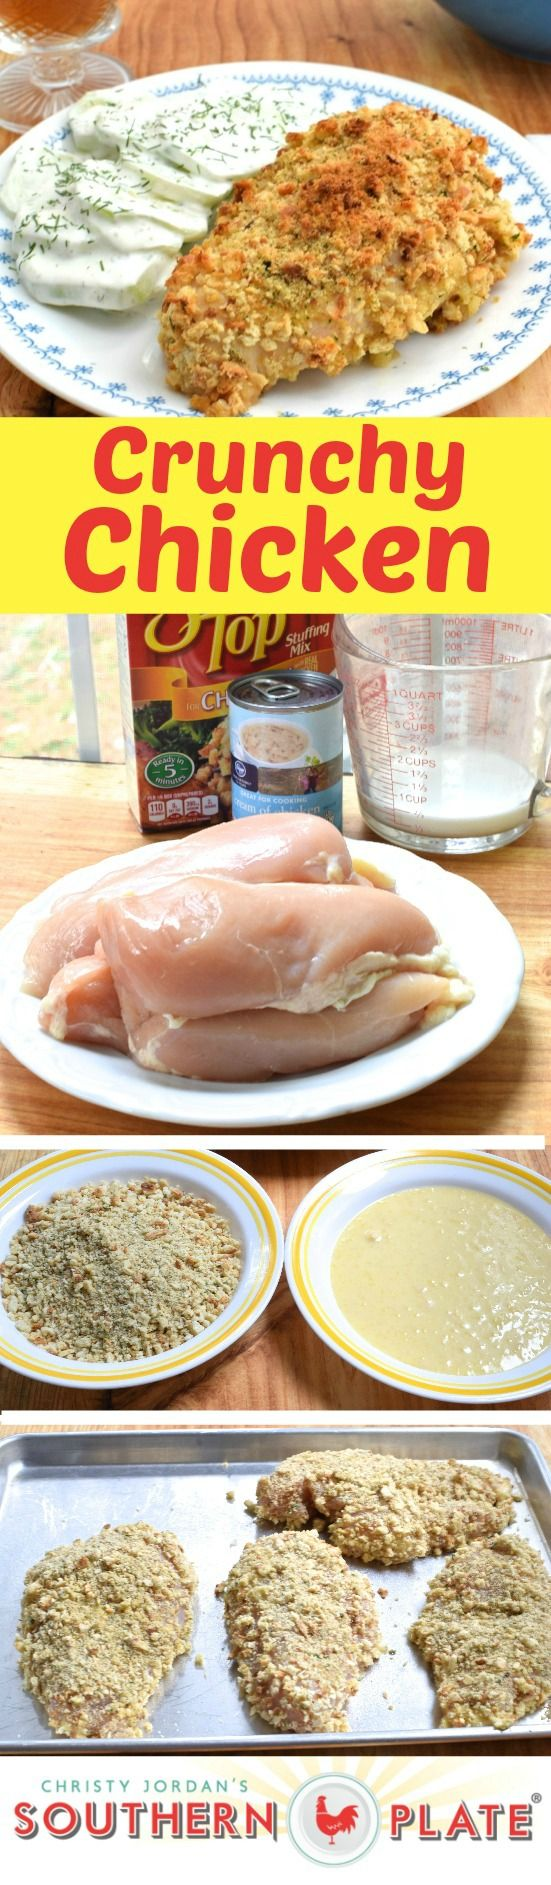 Easy Recipe For Crunchy and Flavorful Boneless Skinless Chicken Breasts!  Southern Plate